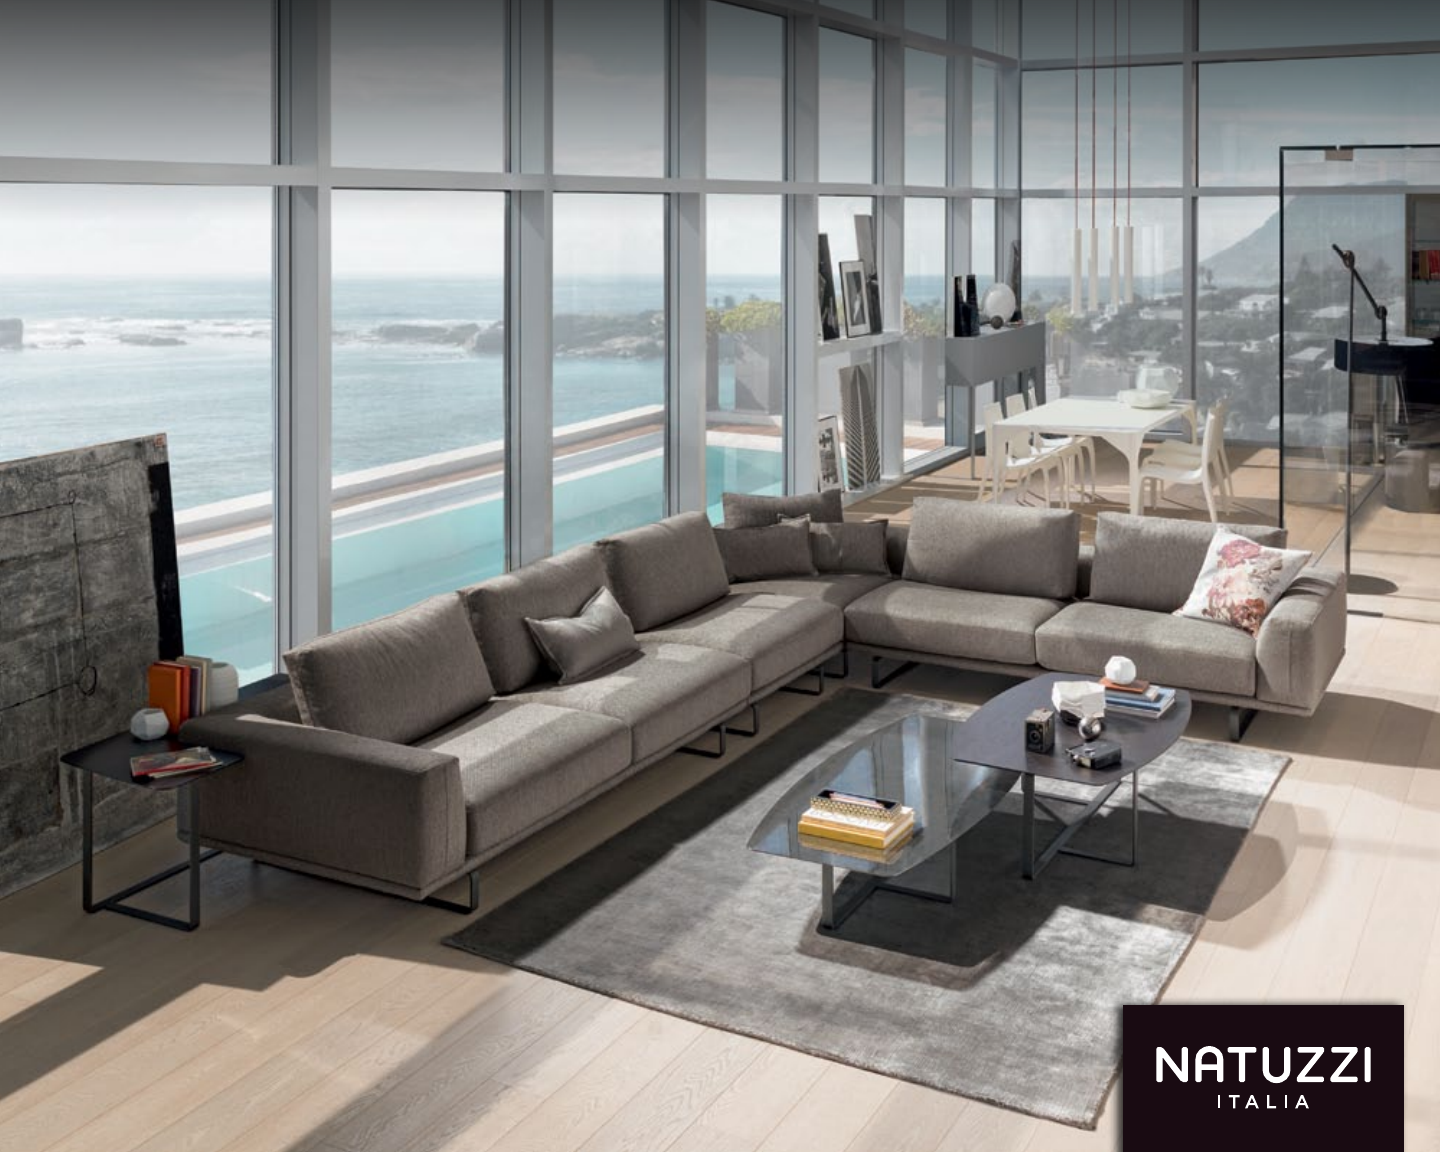 Picture of: Quick Time Time Program By Natuzzi Italia Sofas 4 Quicktime Quicktime 5 Avana Available Finishes Cream Pine Cream Laquer